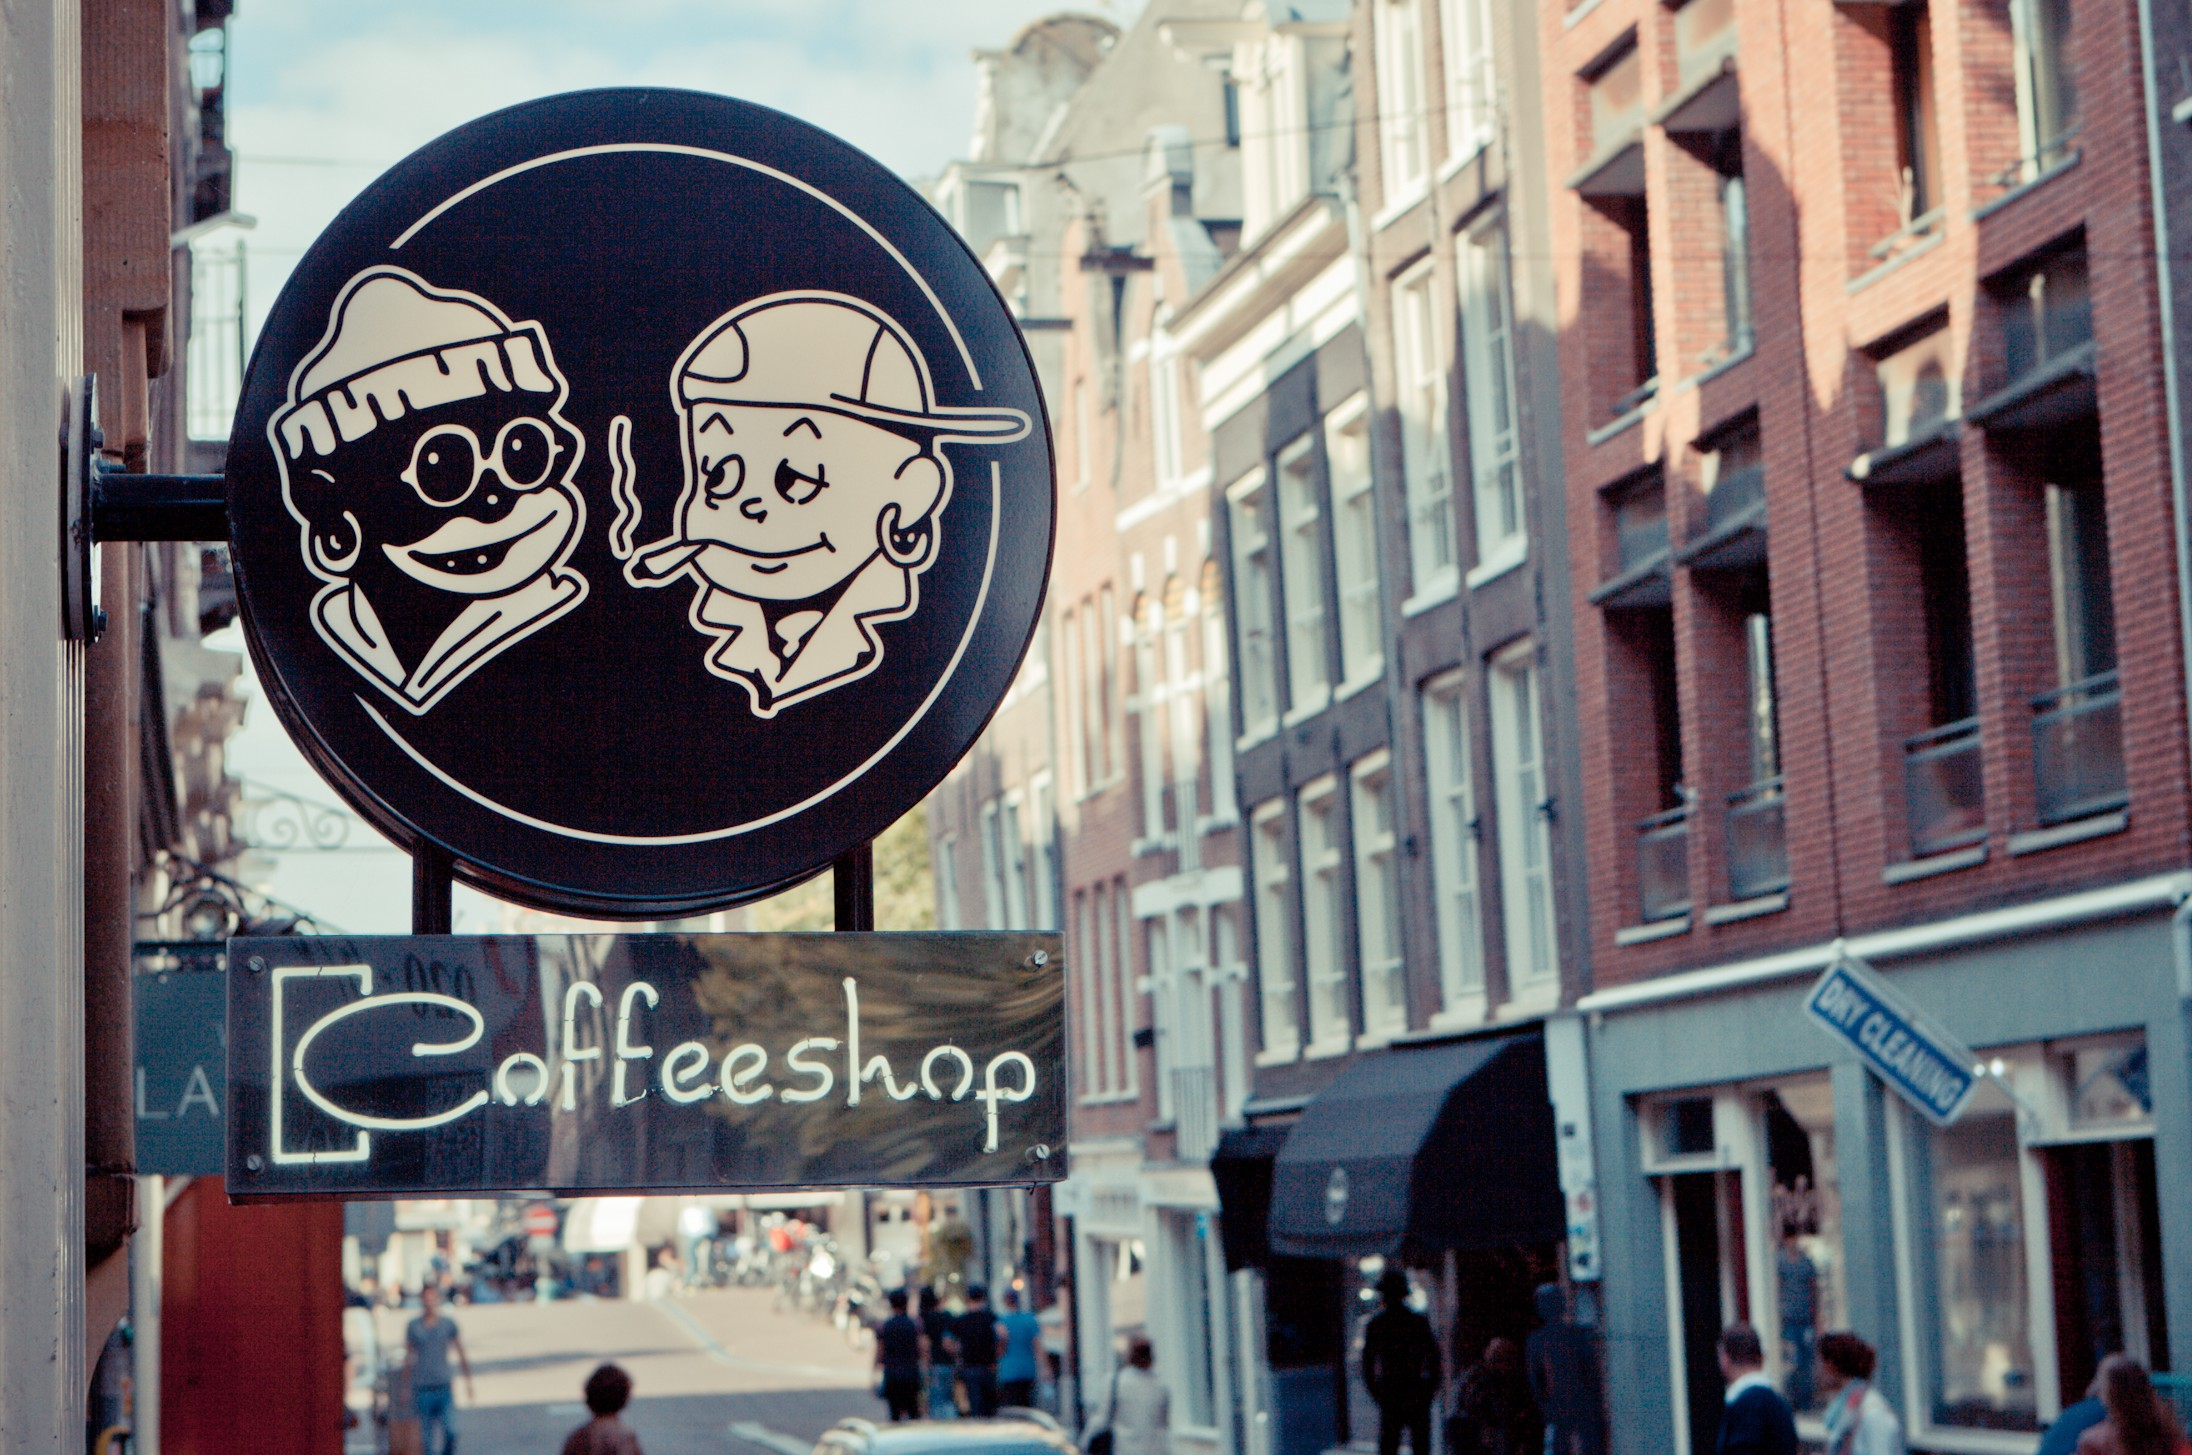 Coffeeshop Best Friends Amsterdam